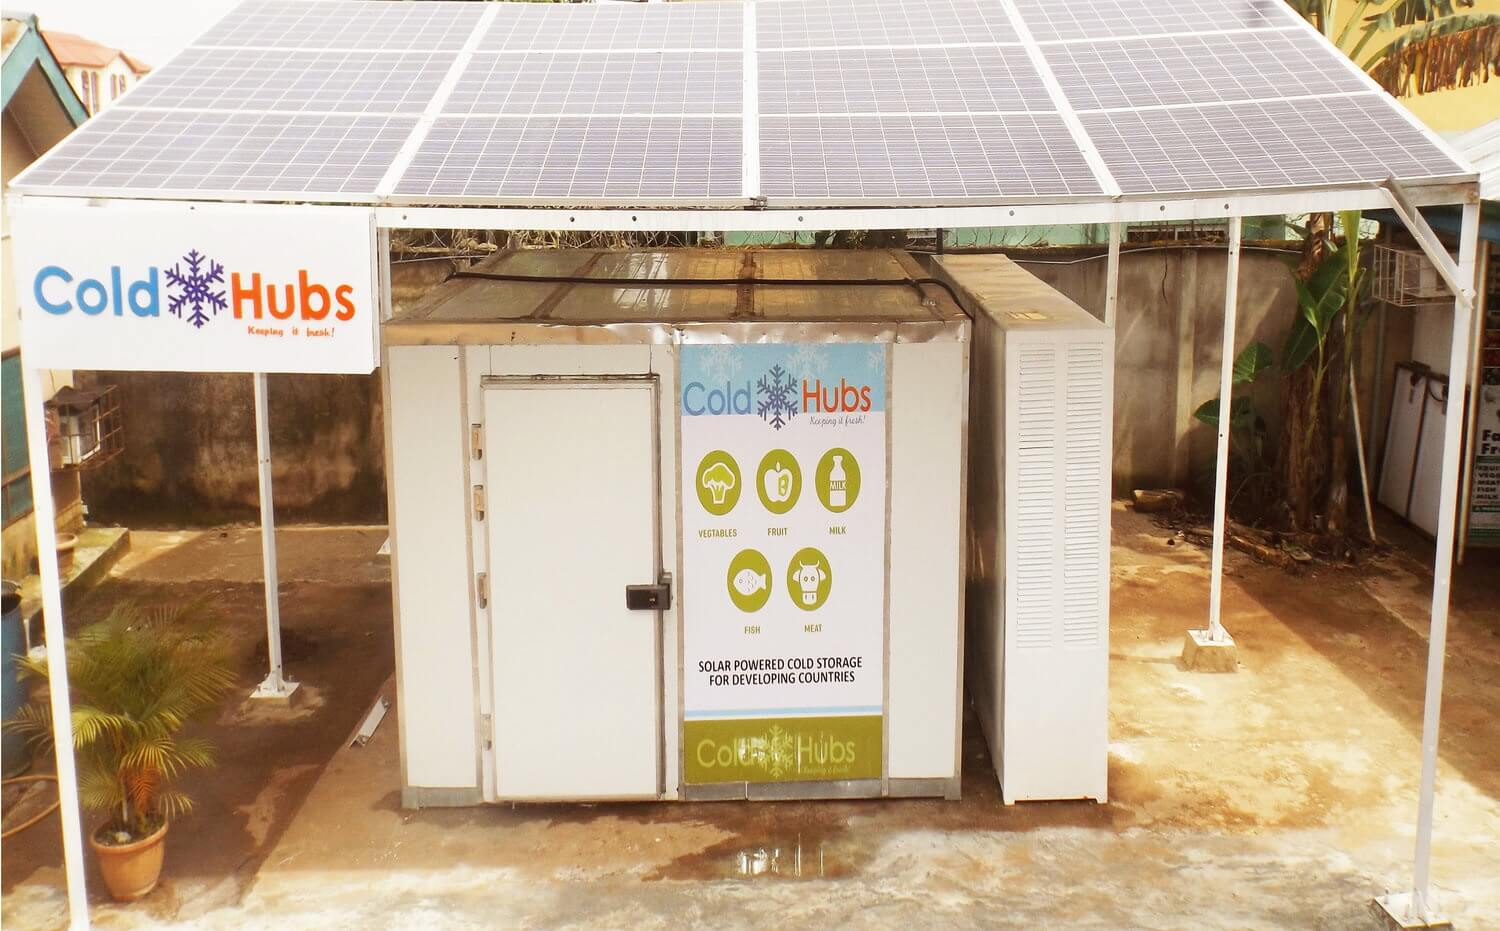 ColdHubs, solar-powered cold storage